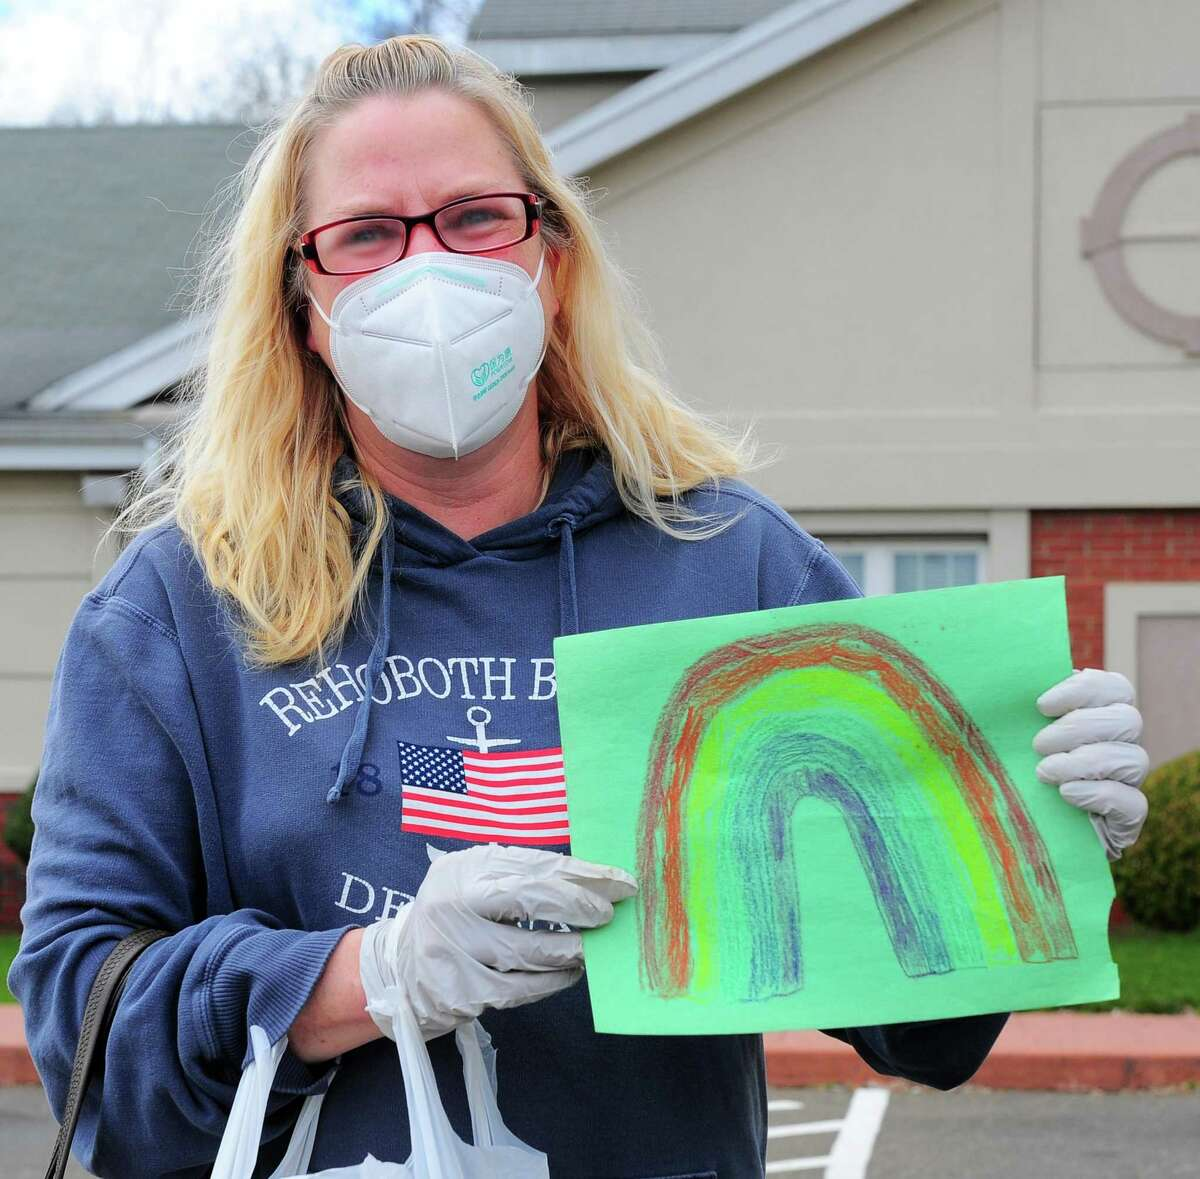 Stratford resident Deidre McShea holds up a rainbow drawn by her child at Lord Chamberlain Nursing & Rehabilitation Center in Stratford, Conn., on Wednesday Apr. 8, 2020. McShea arrived to drop off books and the drawing for a resident she is close to. She is unable to physically visit with her because of the lockdown at the center to keep the coronavirus from infecting anyone.